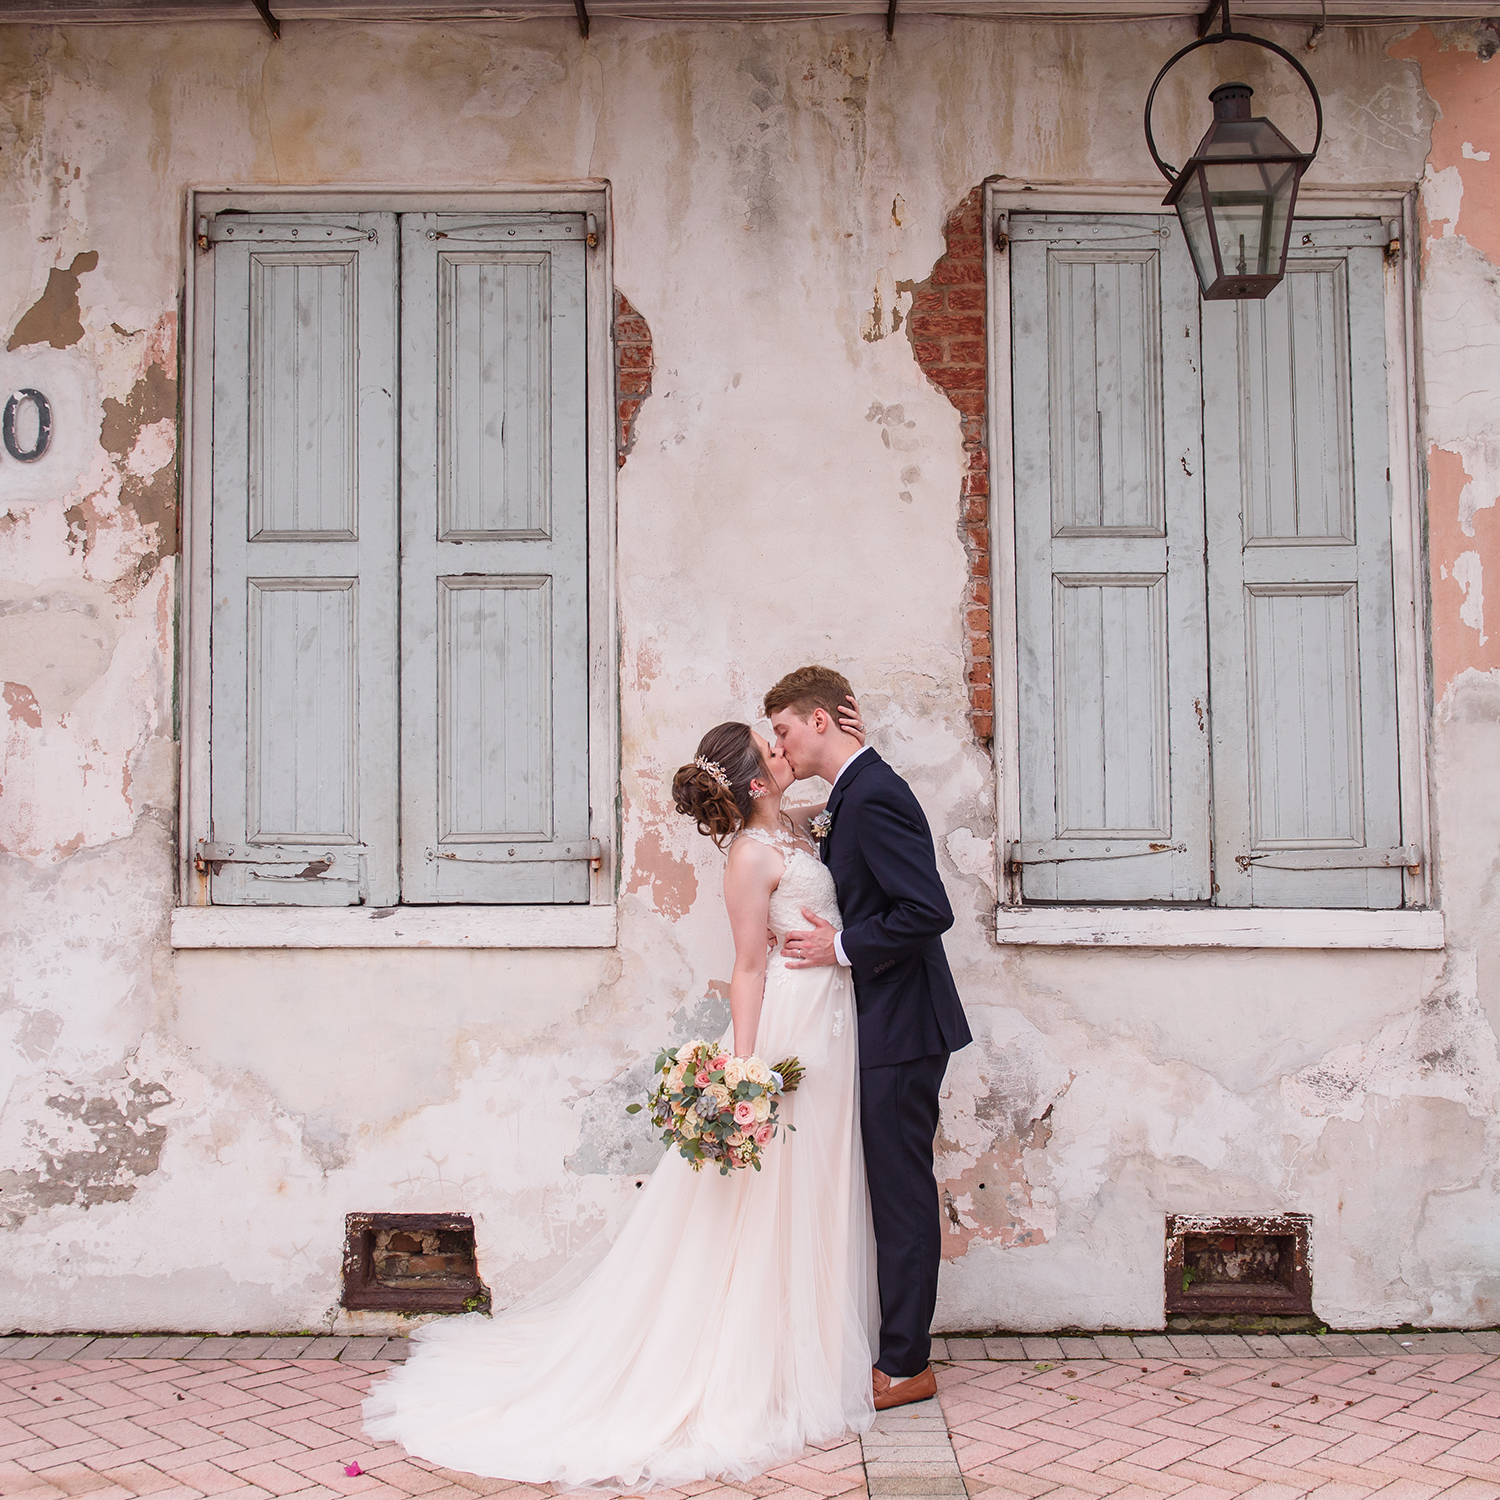 Intimate New Orleans Summer Wedding| Connor & Jacqueline